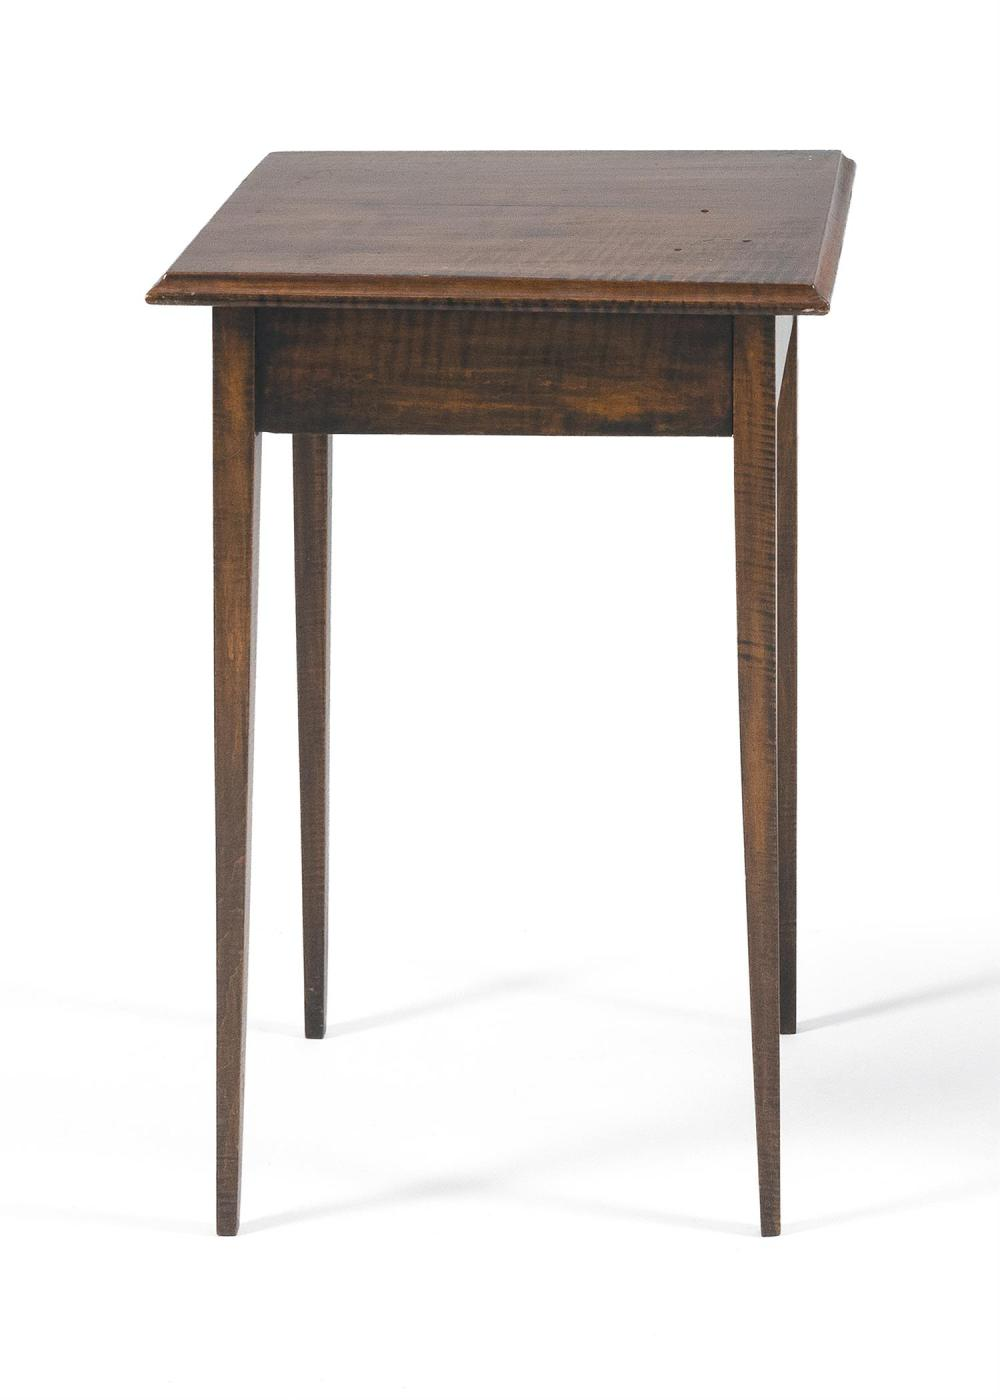 COUNTRY HEPPLEWHITE STAND In curly maple, with a molded-edge top and slender tapered legs. Height 28.25